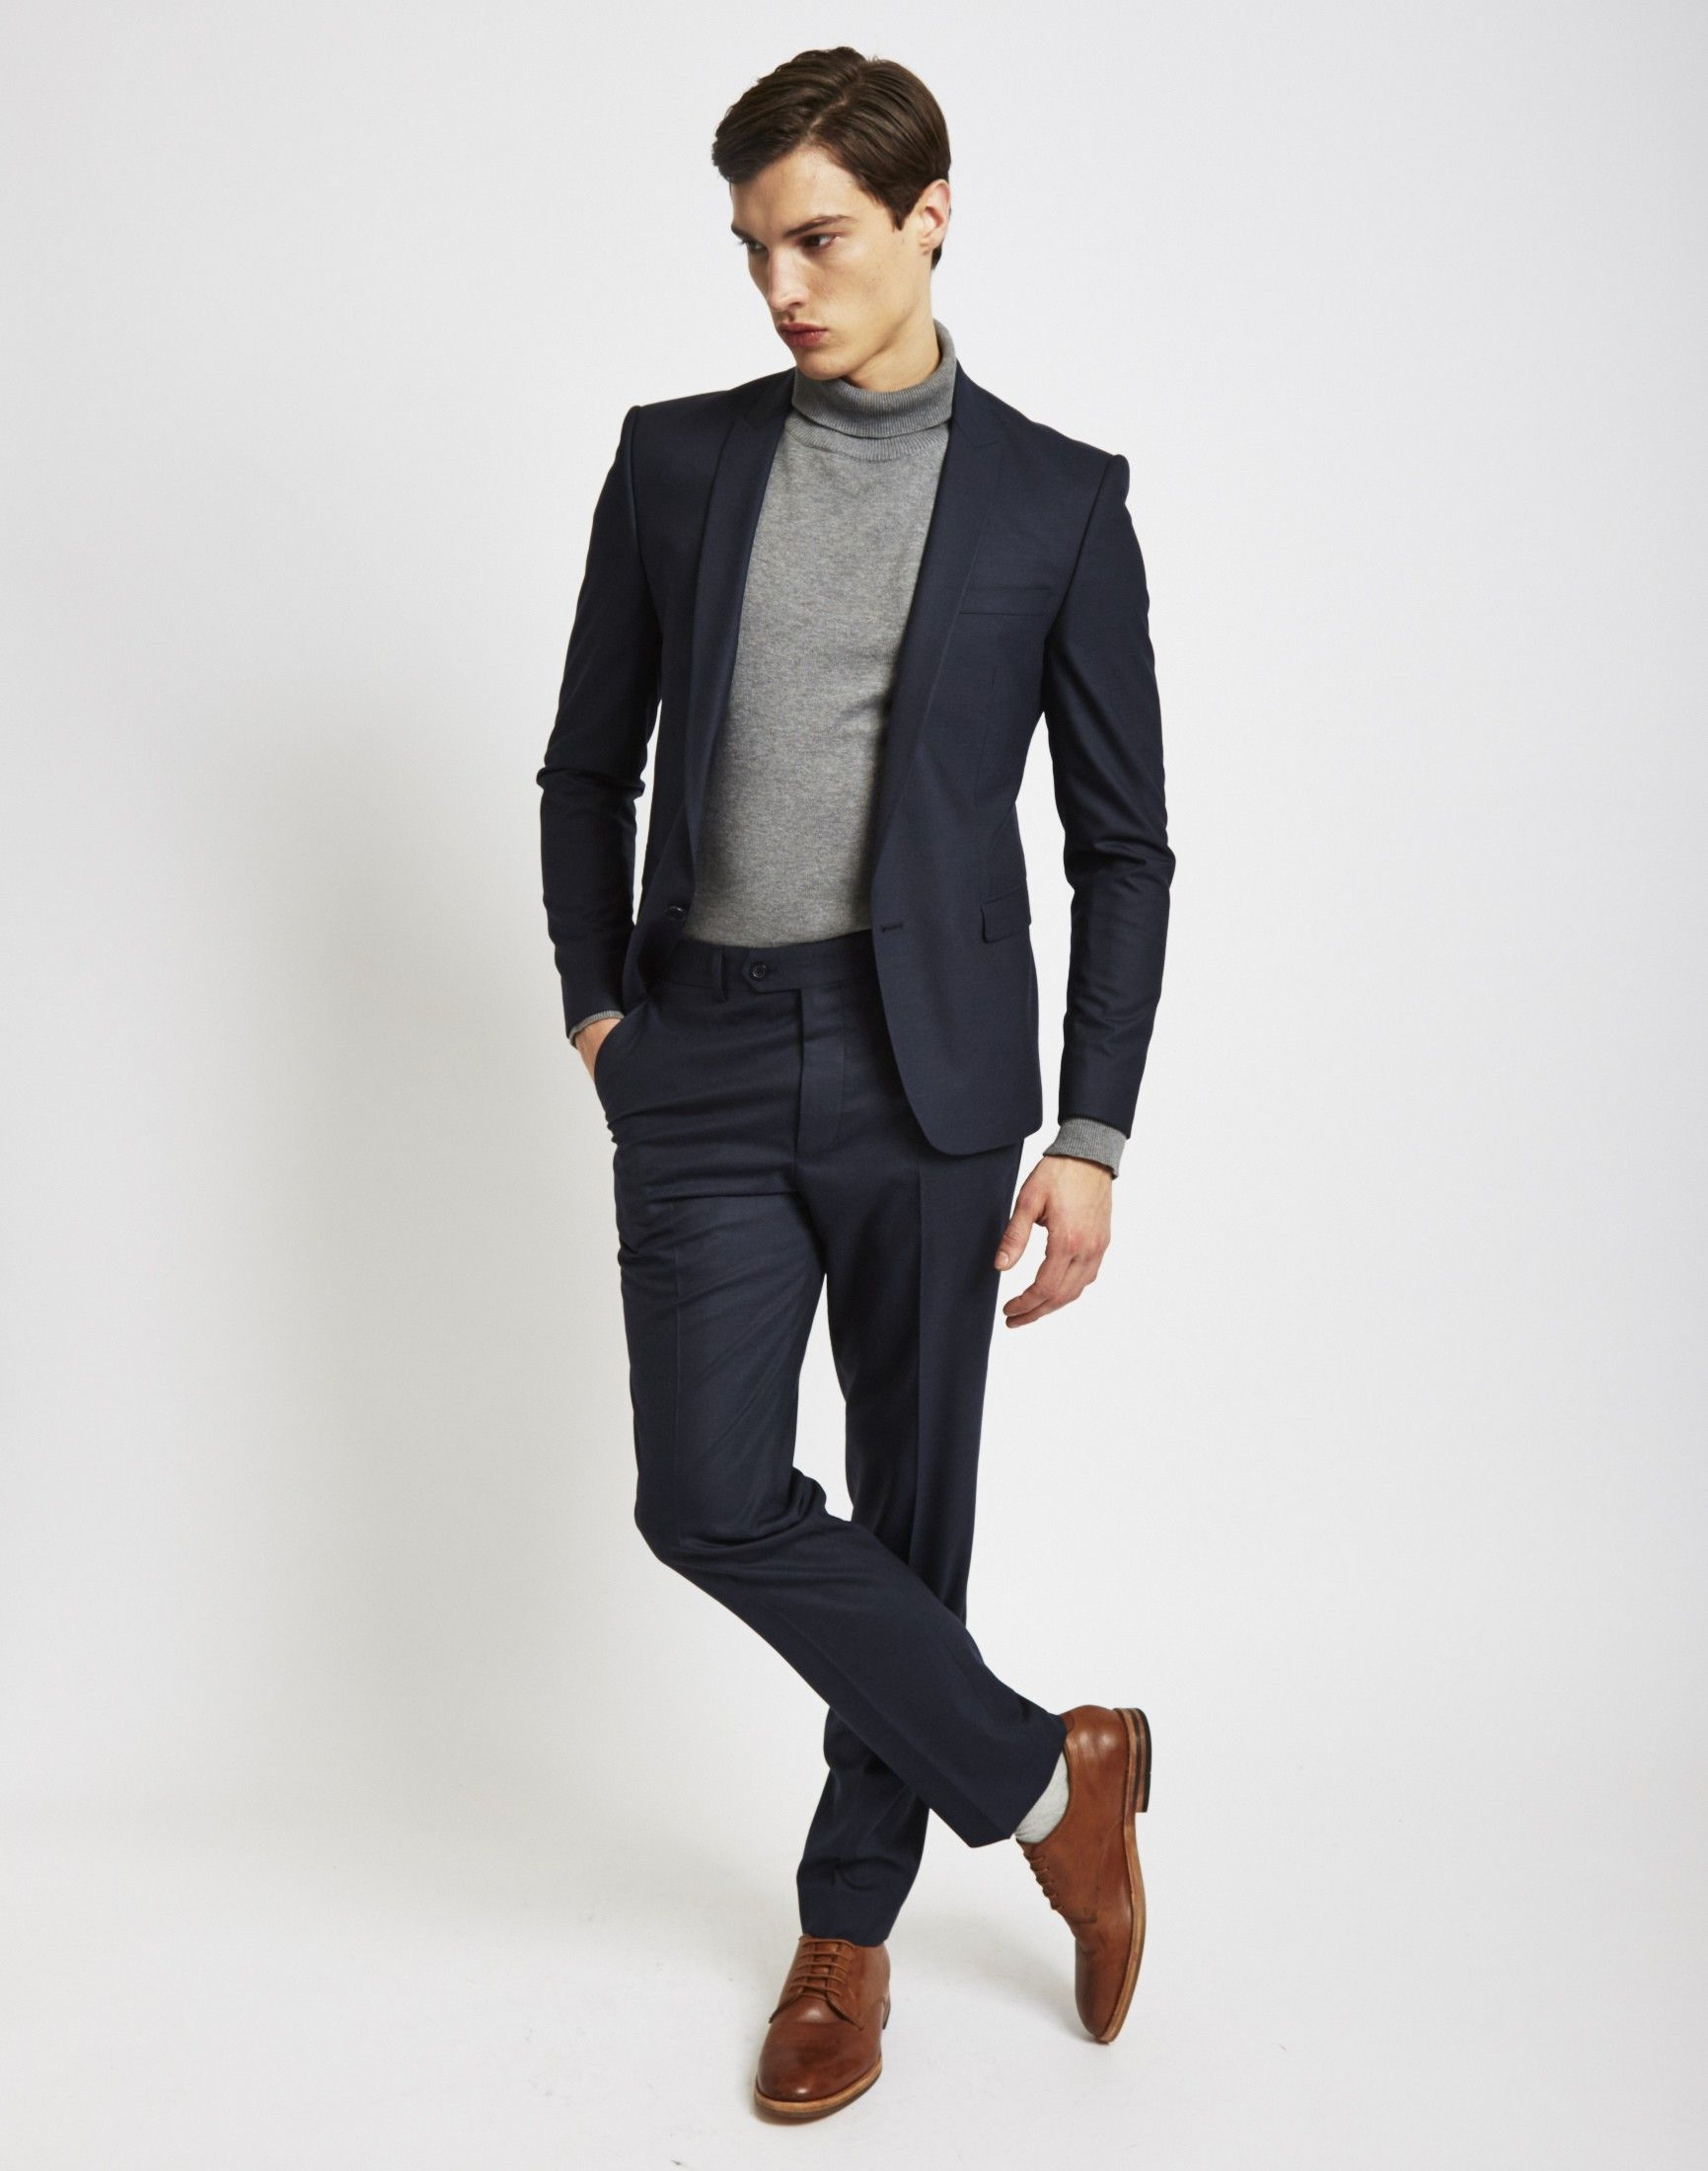 43e75a3b4fefc The Idle Man Suit Jacket in Skinny Fit - Navy | Men's fashion in ...